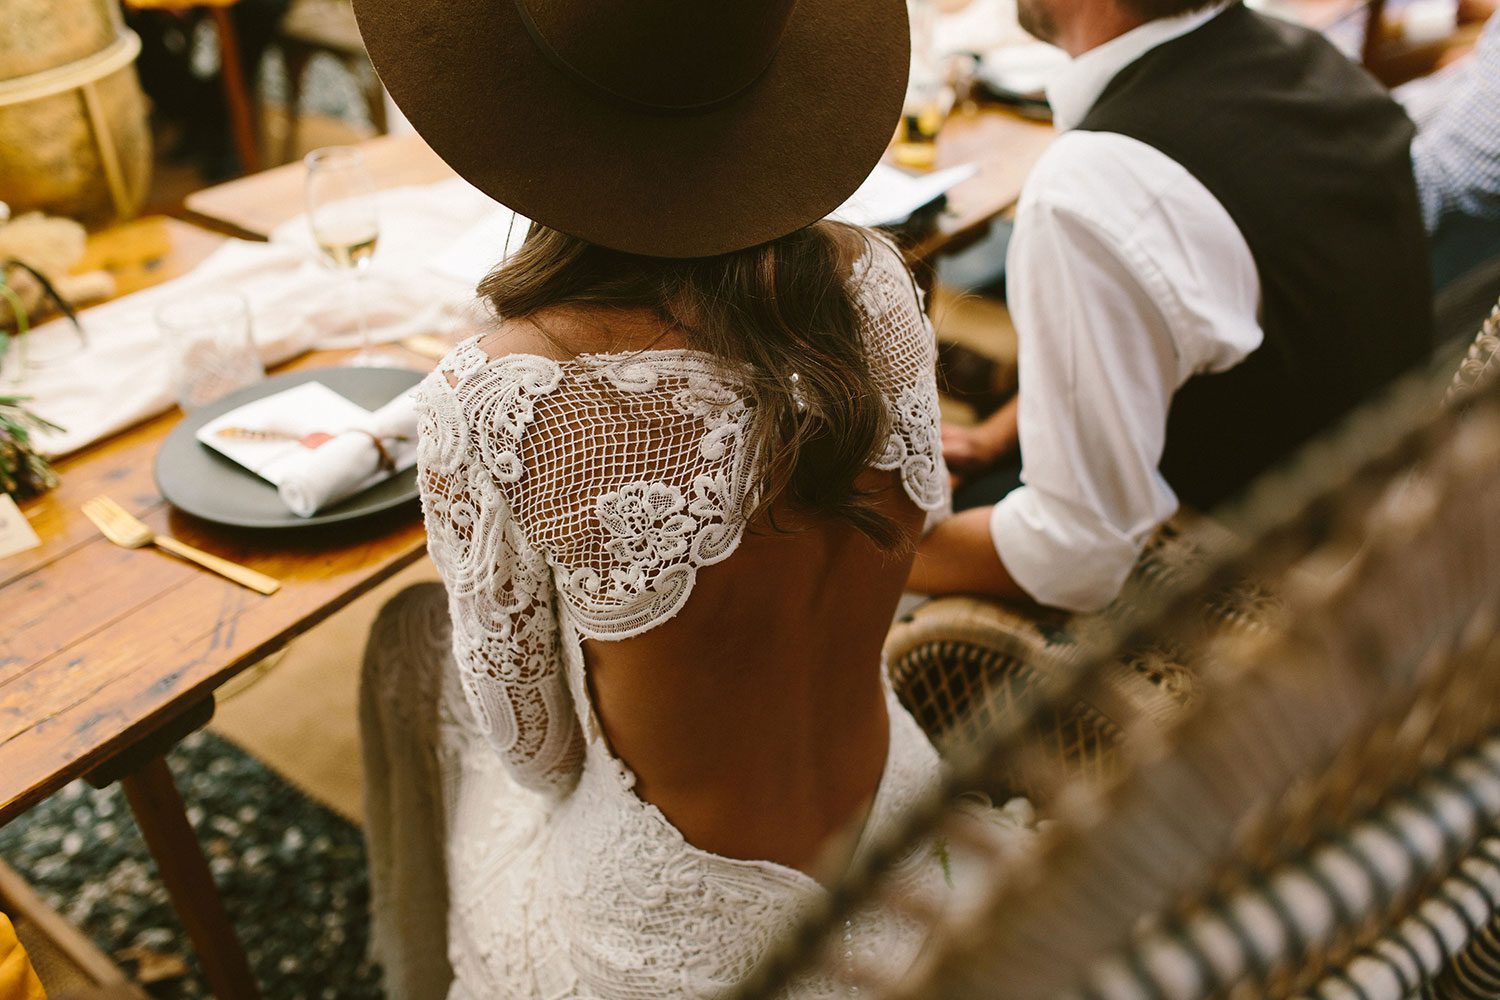 Bride wearing Sabine wedding gown by Auckland wedding dress maker Vinka Design, with French crochet lace detail and long sleeves - at head table